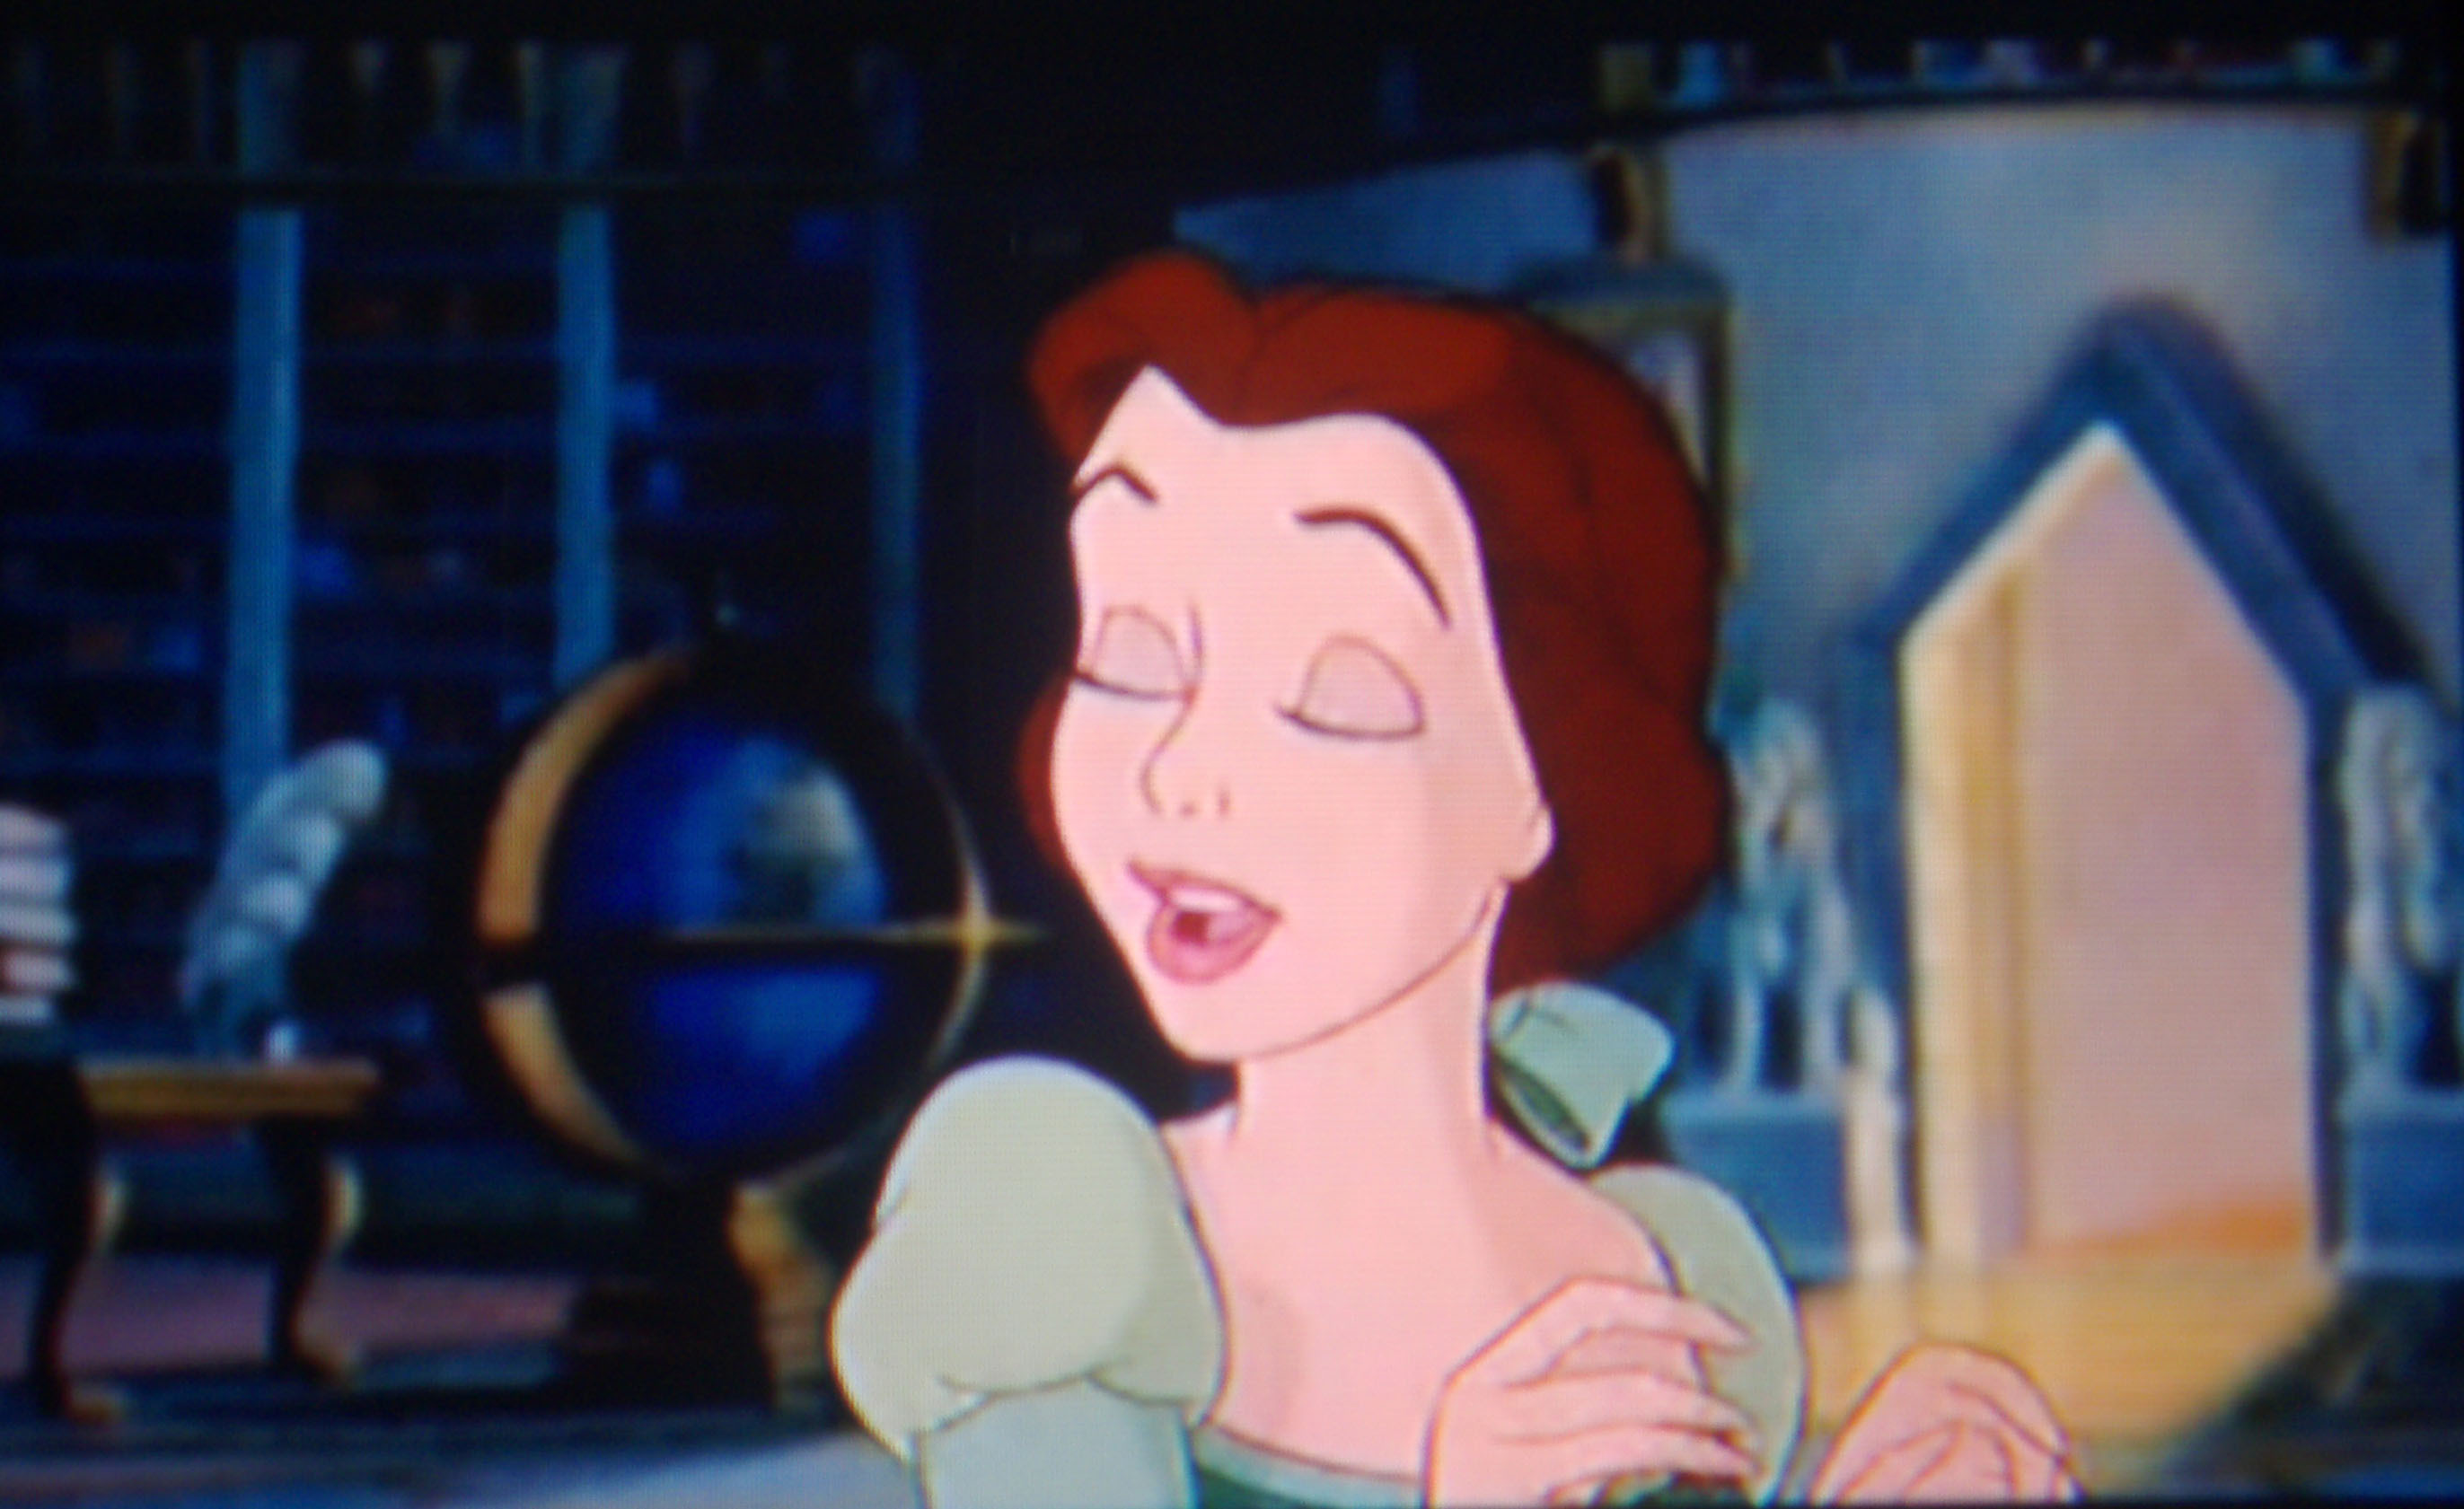 What Is Your Paborito Outfit That Belle Wears